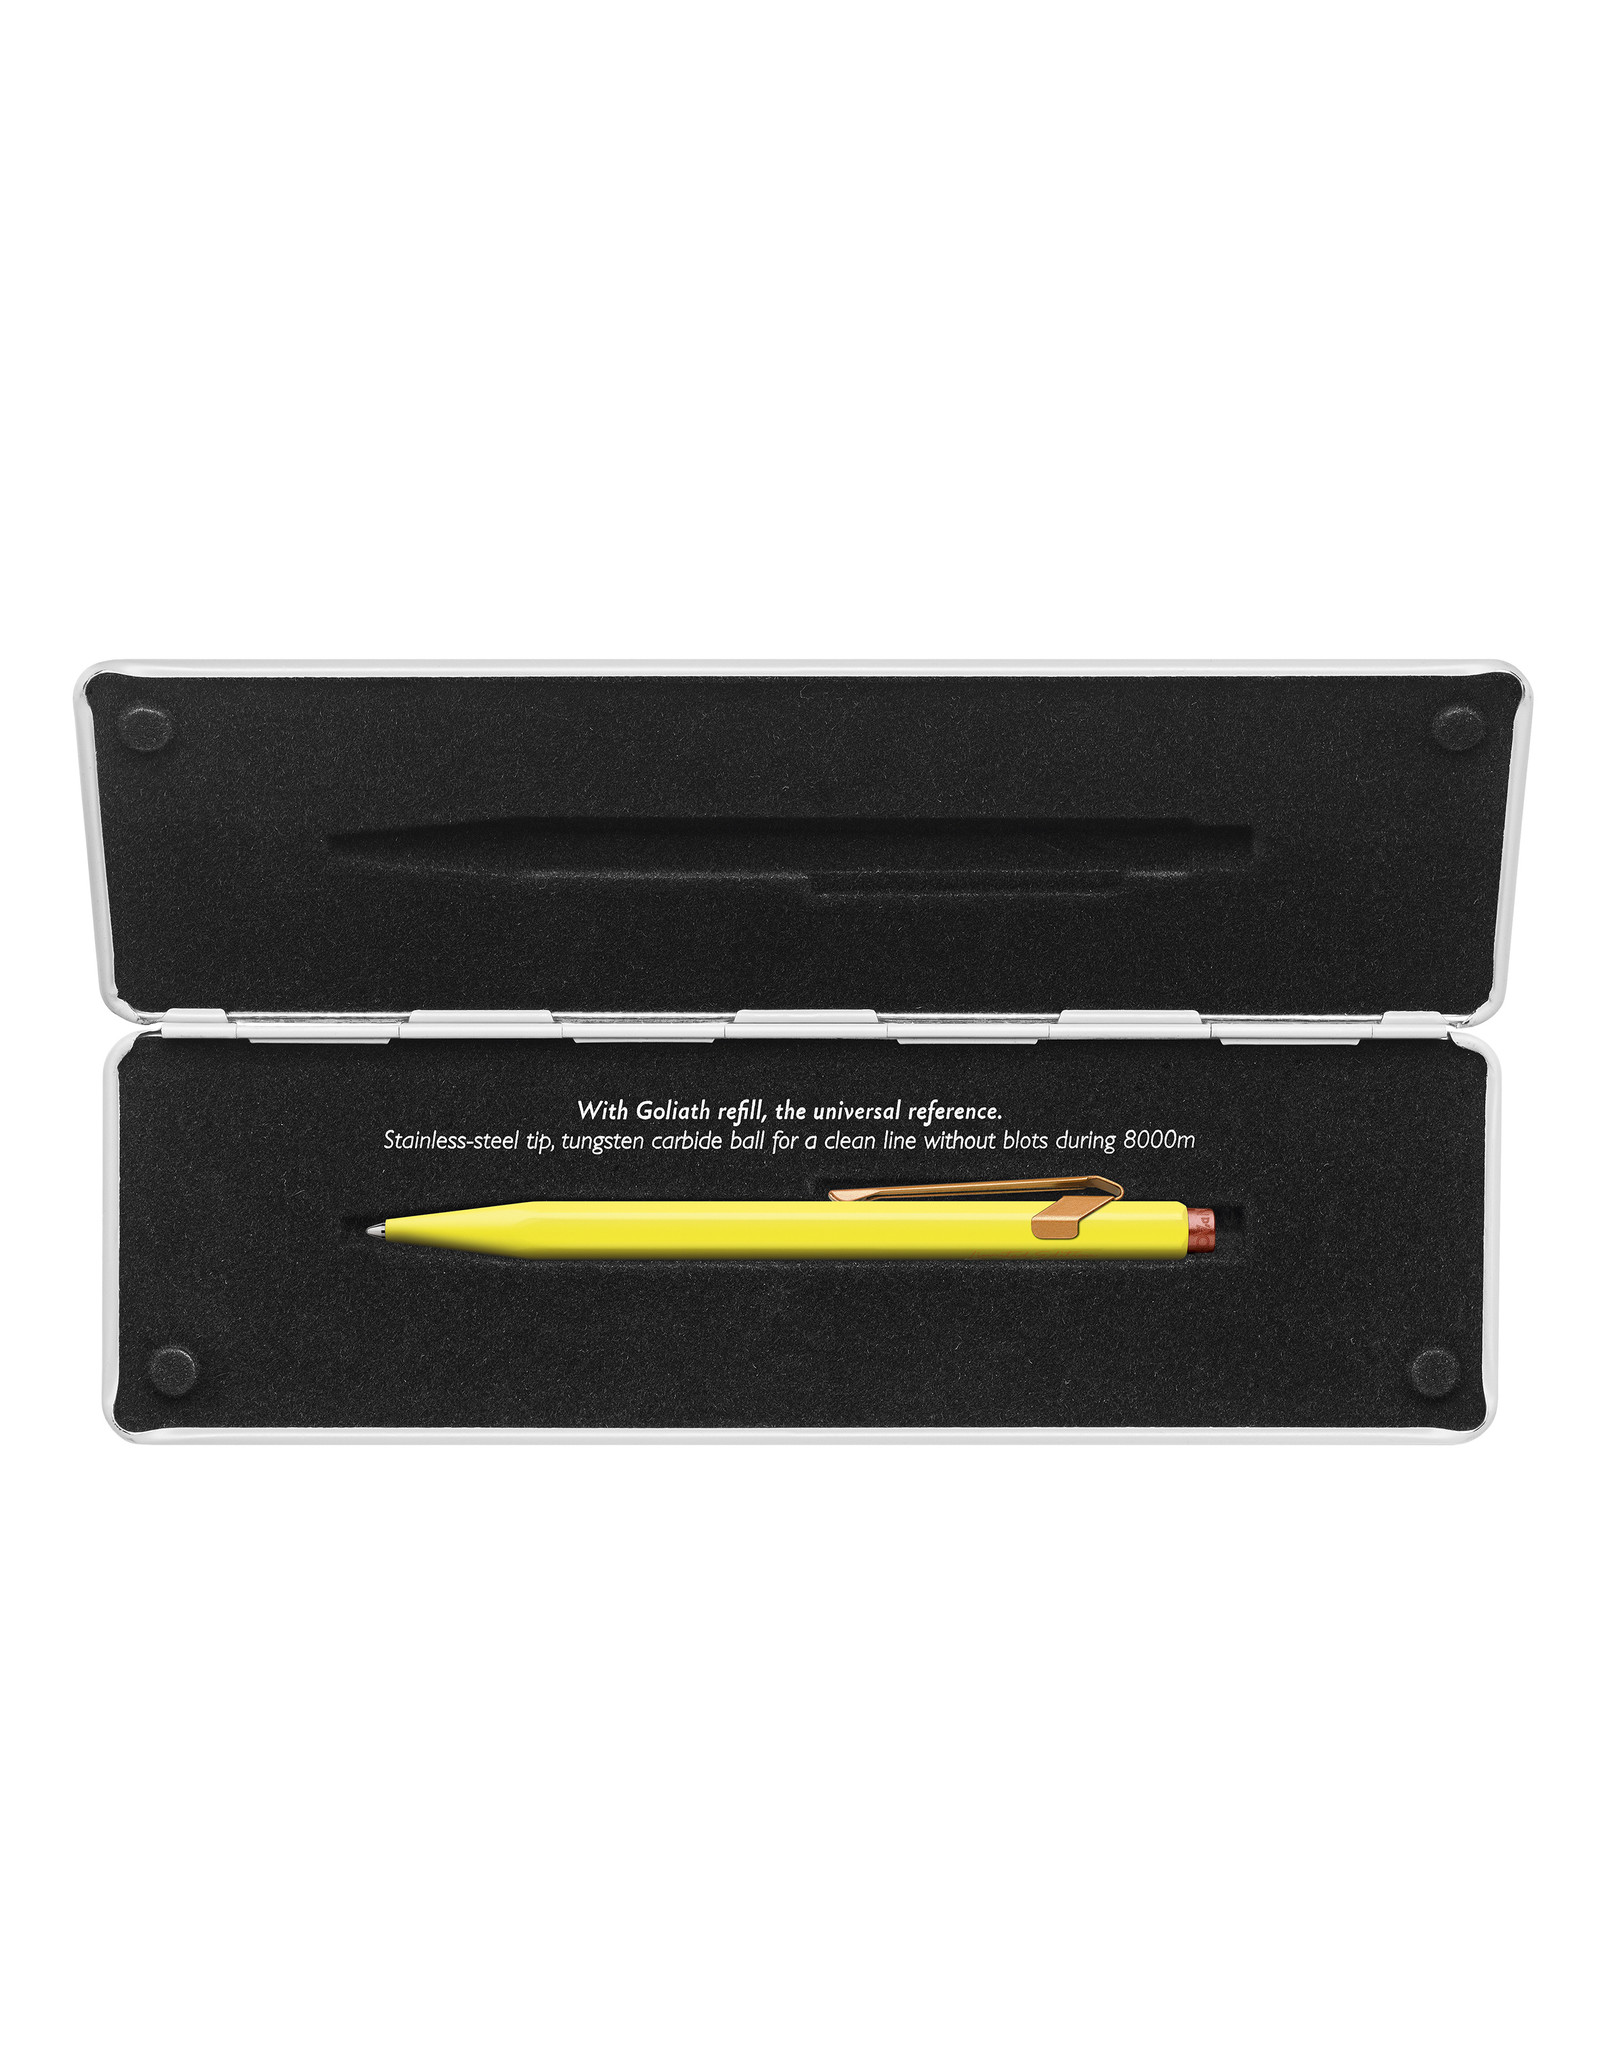 Caran d'Ache 849 Claim your style 2020 canary yellow